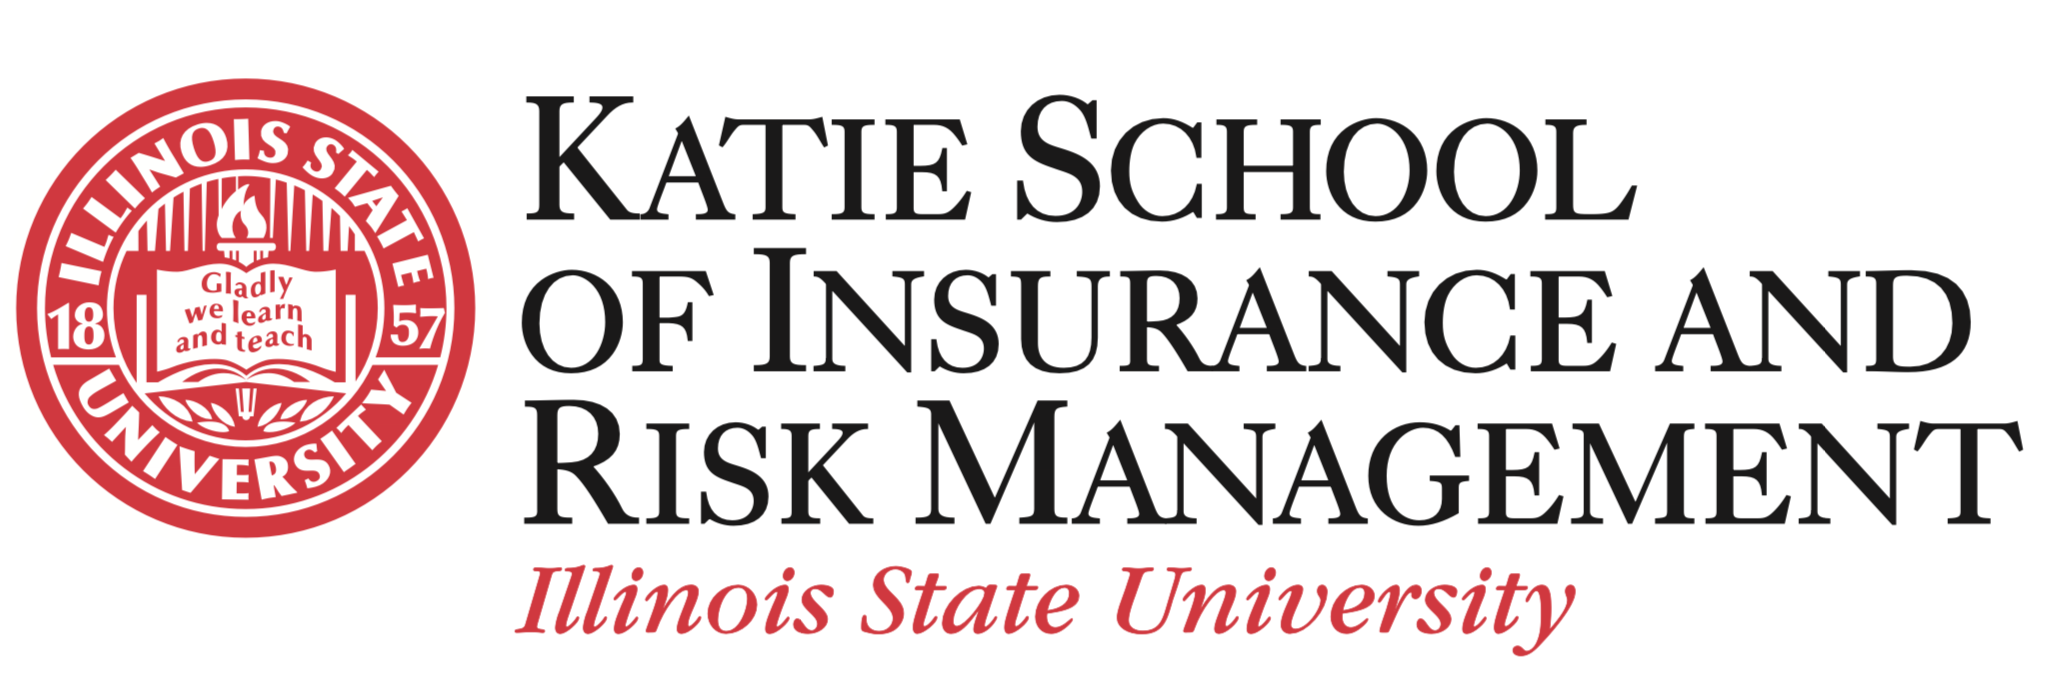 Katie School of Insurance and Risk Management